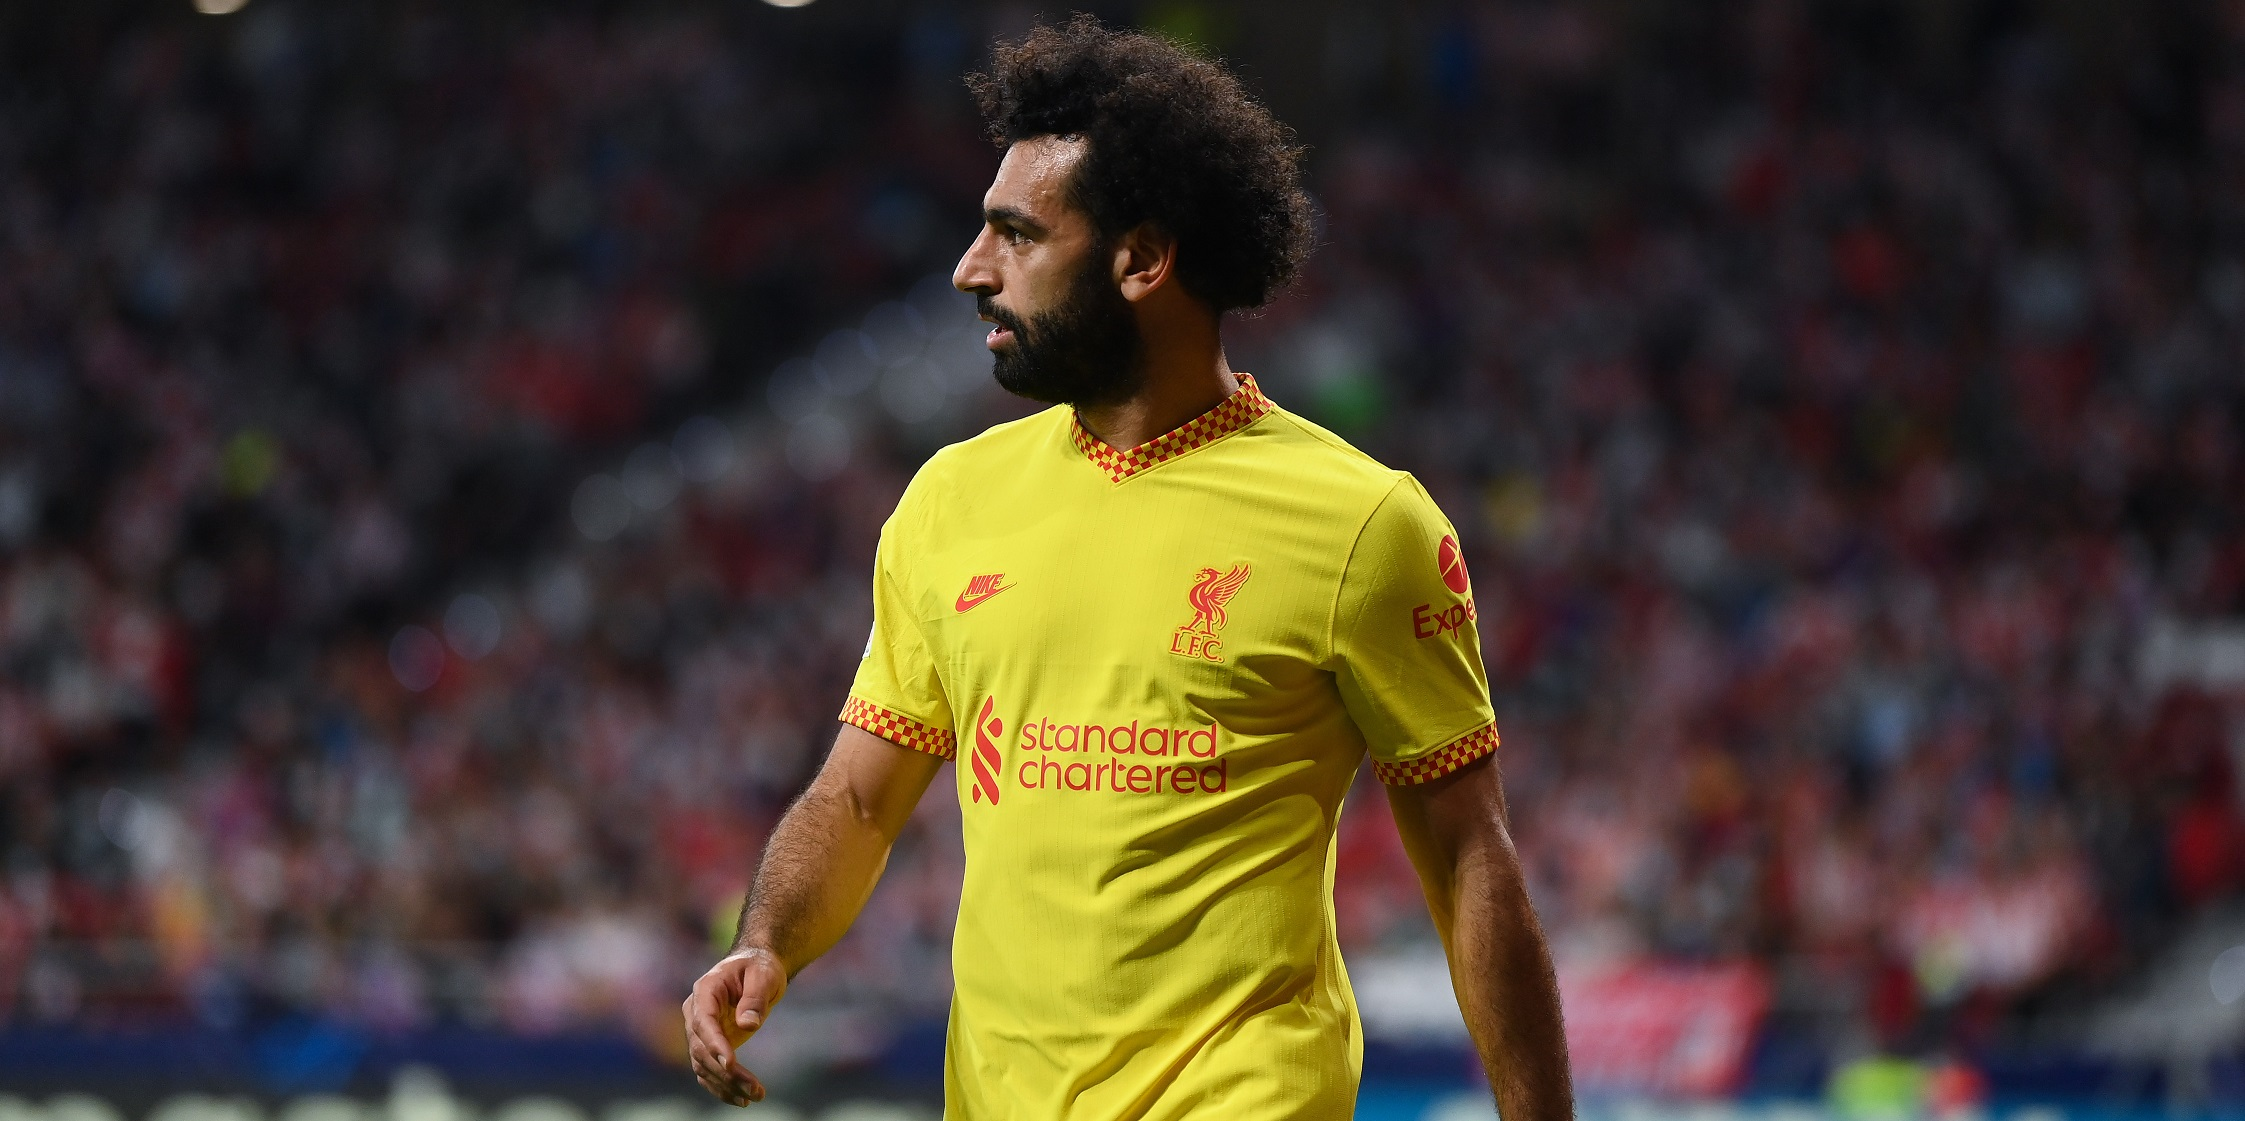 Klopp loses patience over Salah contract saga and steps in to resolve matter – report